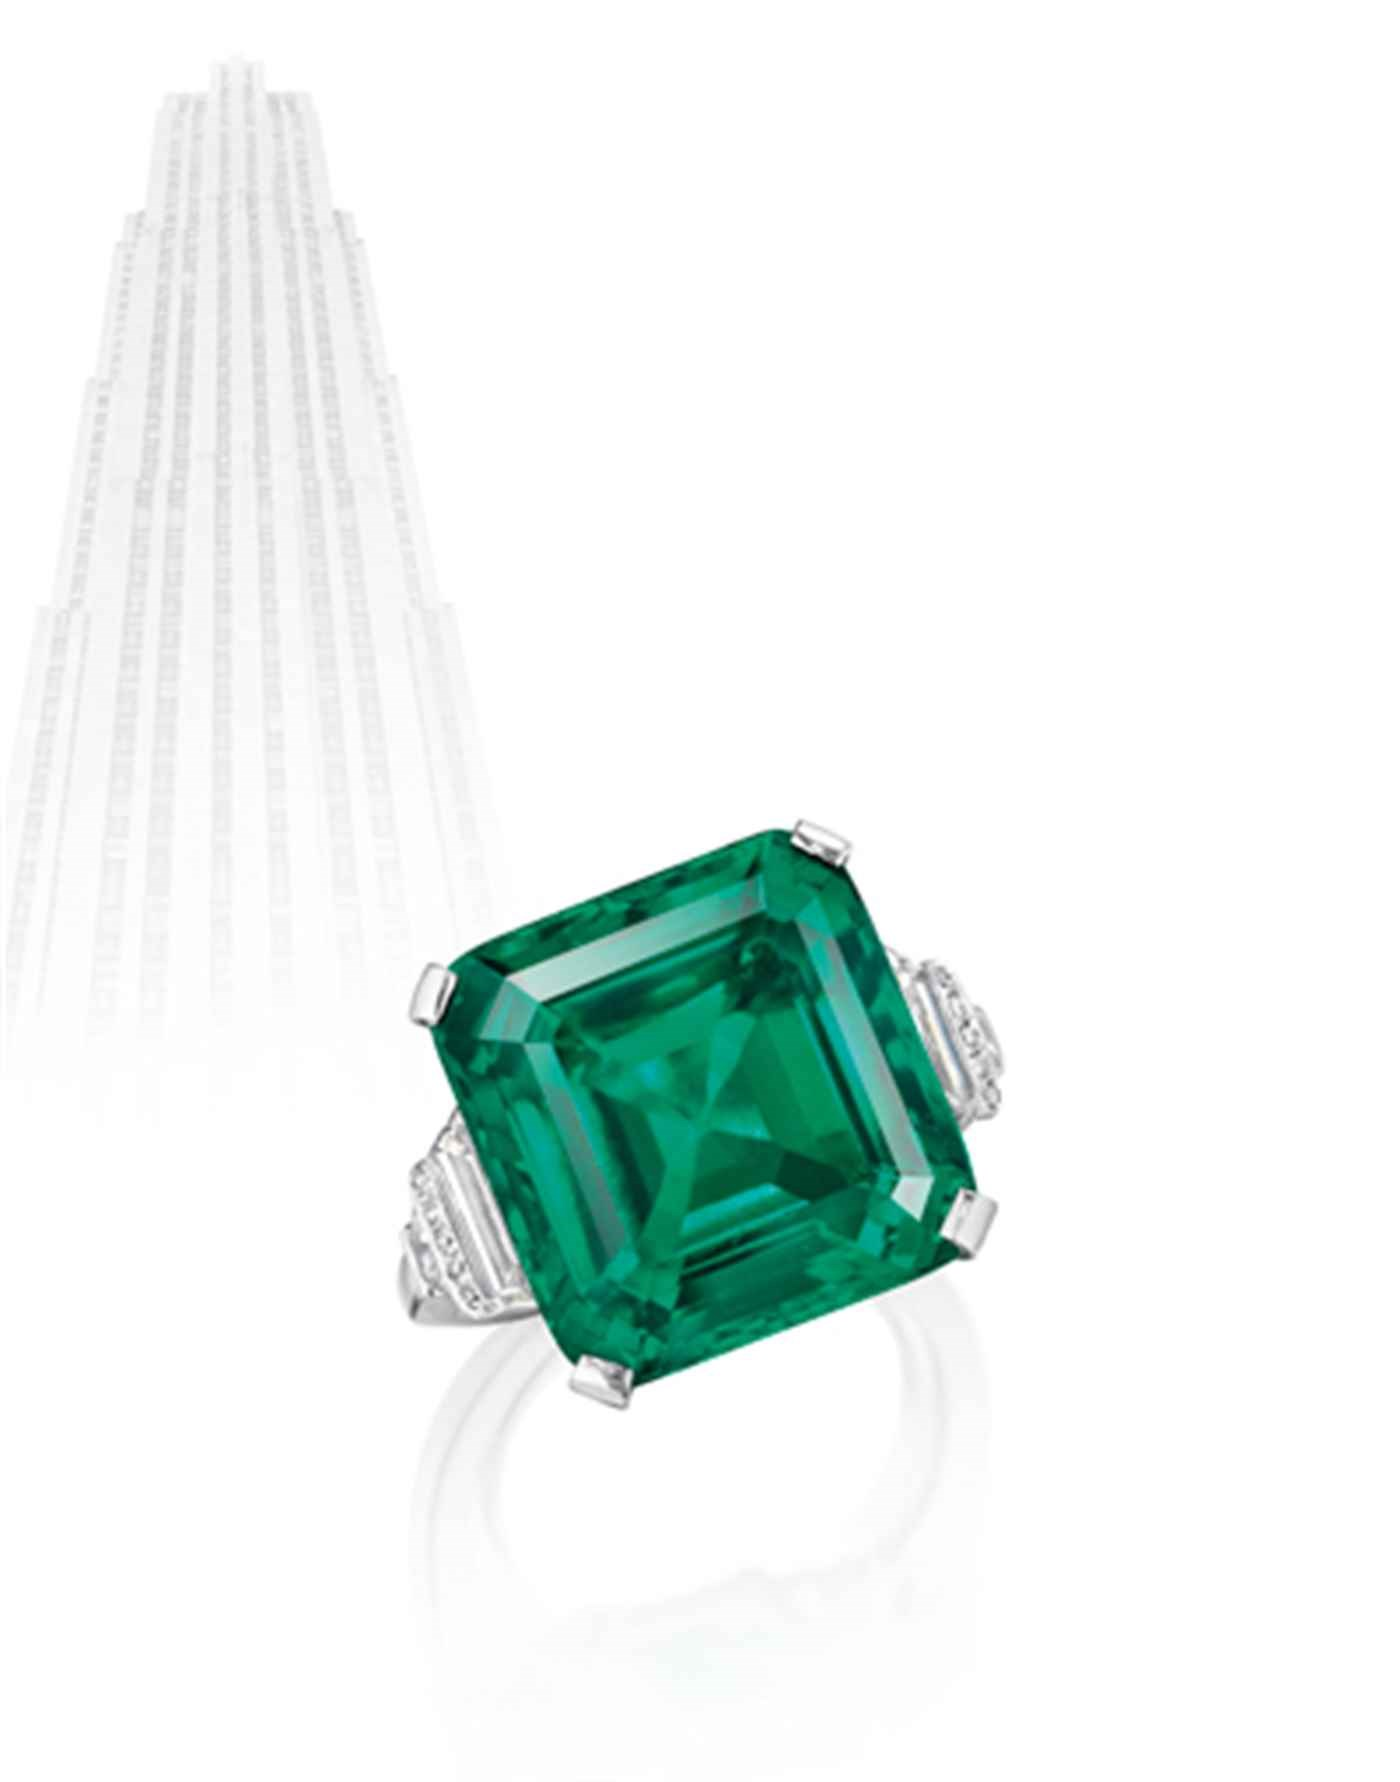 Magnificent Jewels & the Rocke auction at Christies